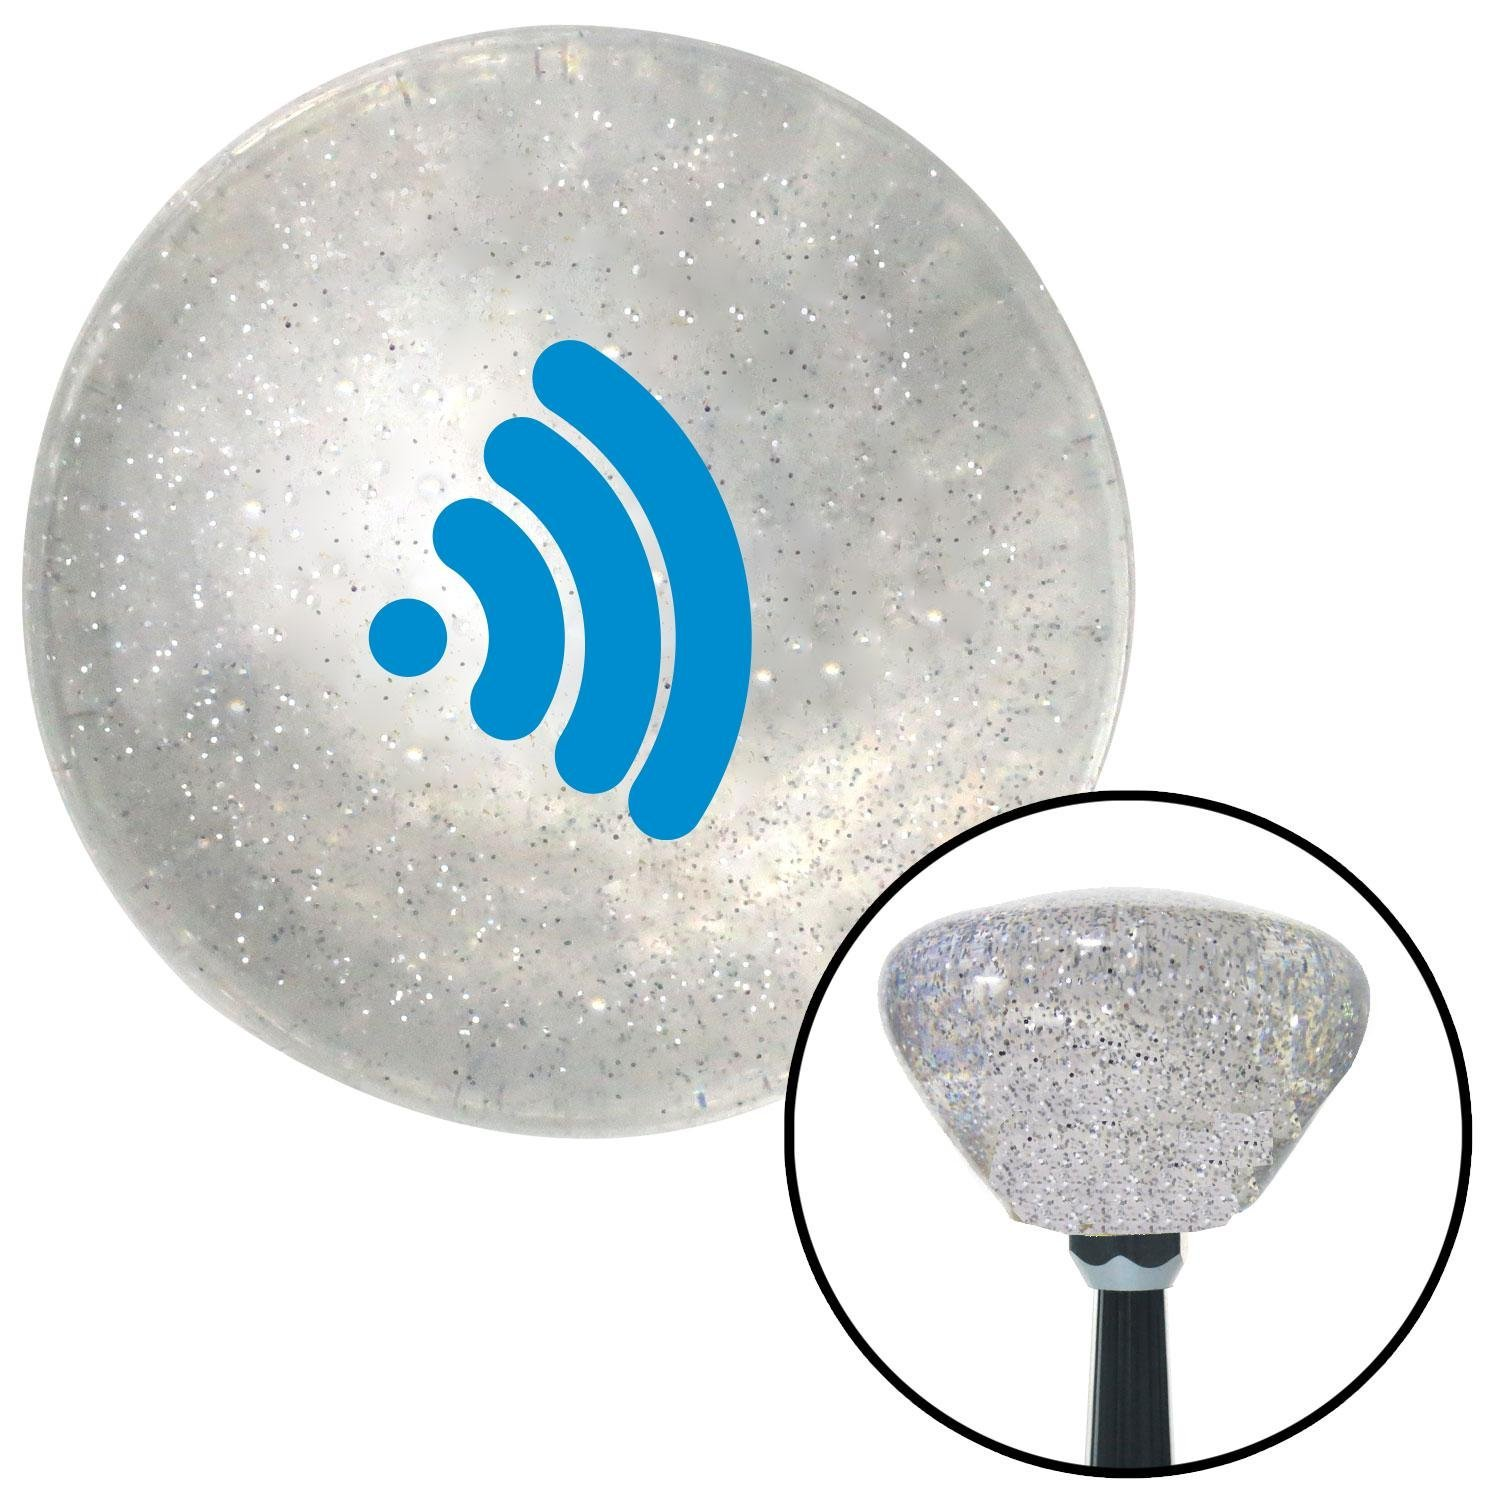 Blue Wireless American Shifter 163802 Clear Retro Metal Flake Shift Knob with M16 x 1.5 Insert